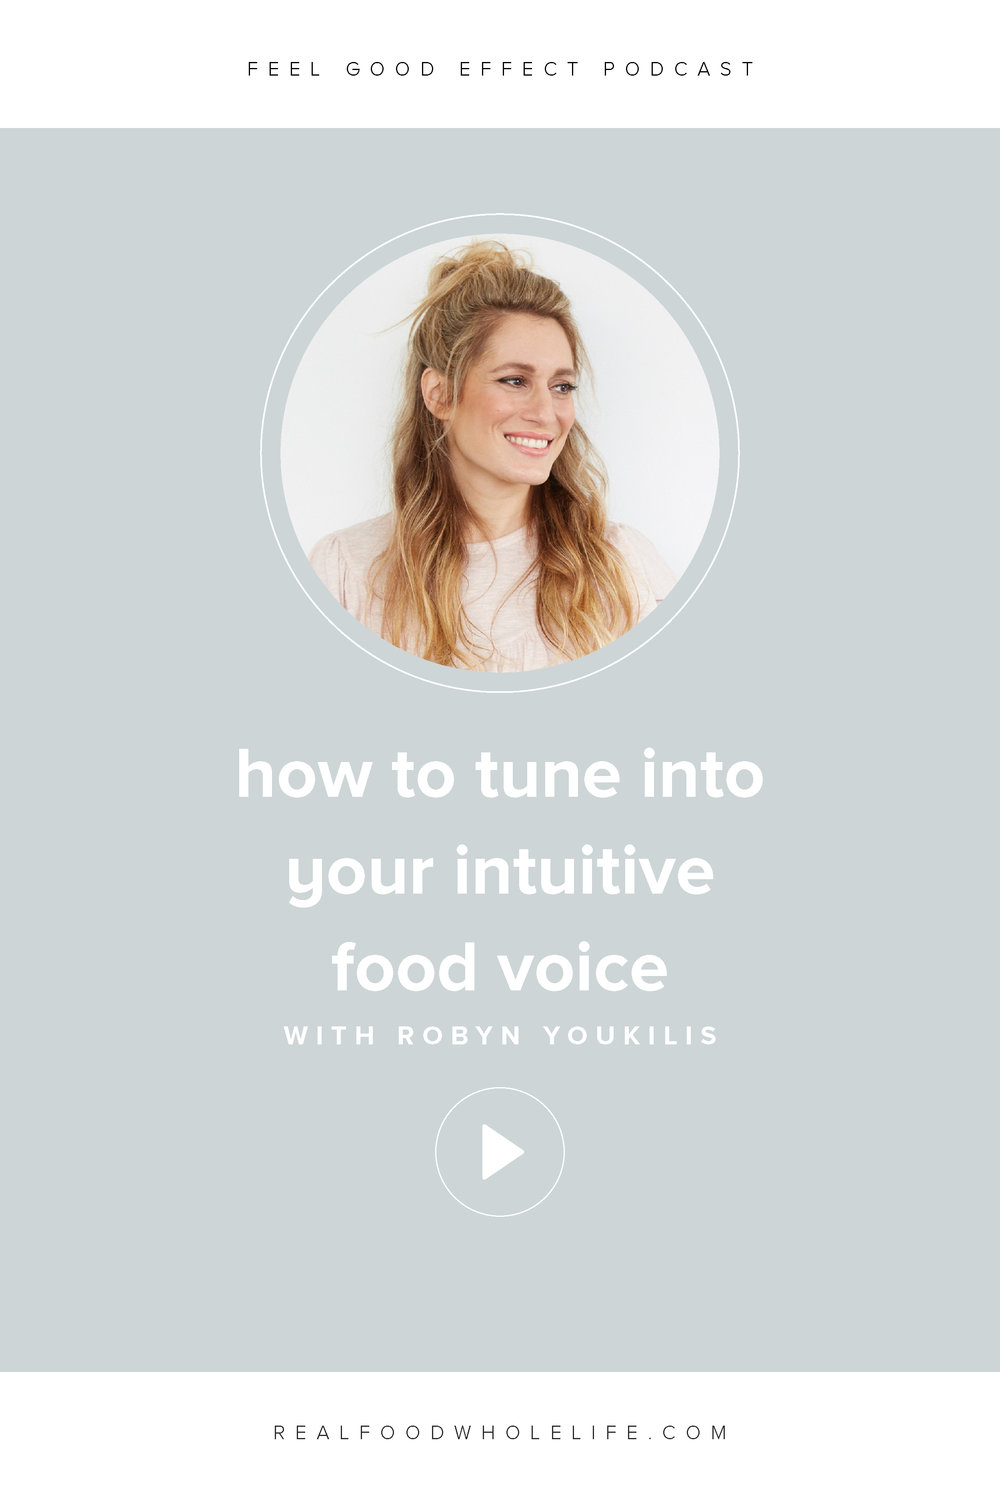 How to Tune Into Your Intuitive Food Voice and Stop Serial Dieting, an episode from the Feel Good Effect podcast.  An interview with Robyn Youkilis. #realfoodwholelife #feelgoodeffectpodcast #personaldevelopment #selfcare #selfimprovement #podcast #wellnesspodcast #healthpodcast #wellness #wellnesspodcast #healthandwellness #healthandwellnesspodcast